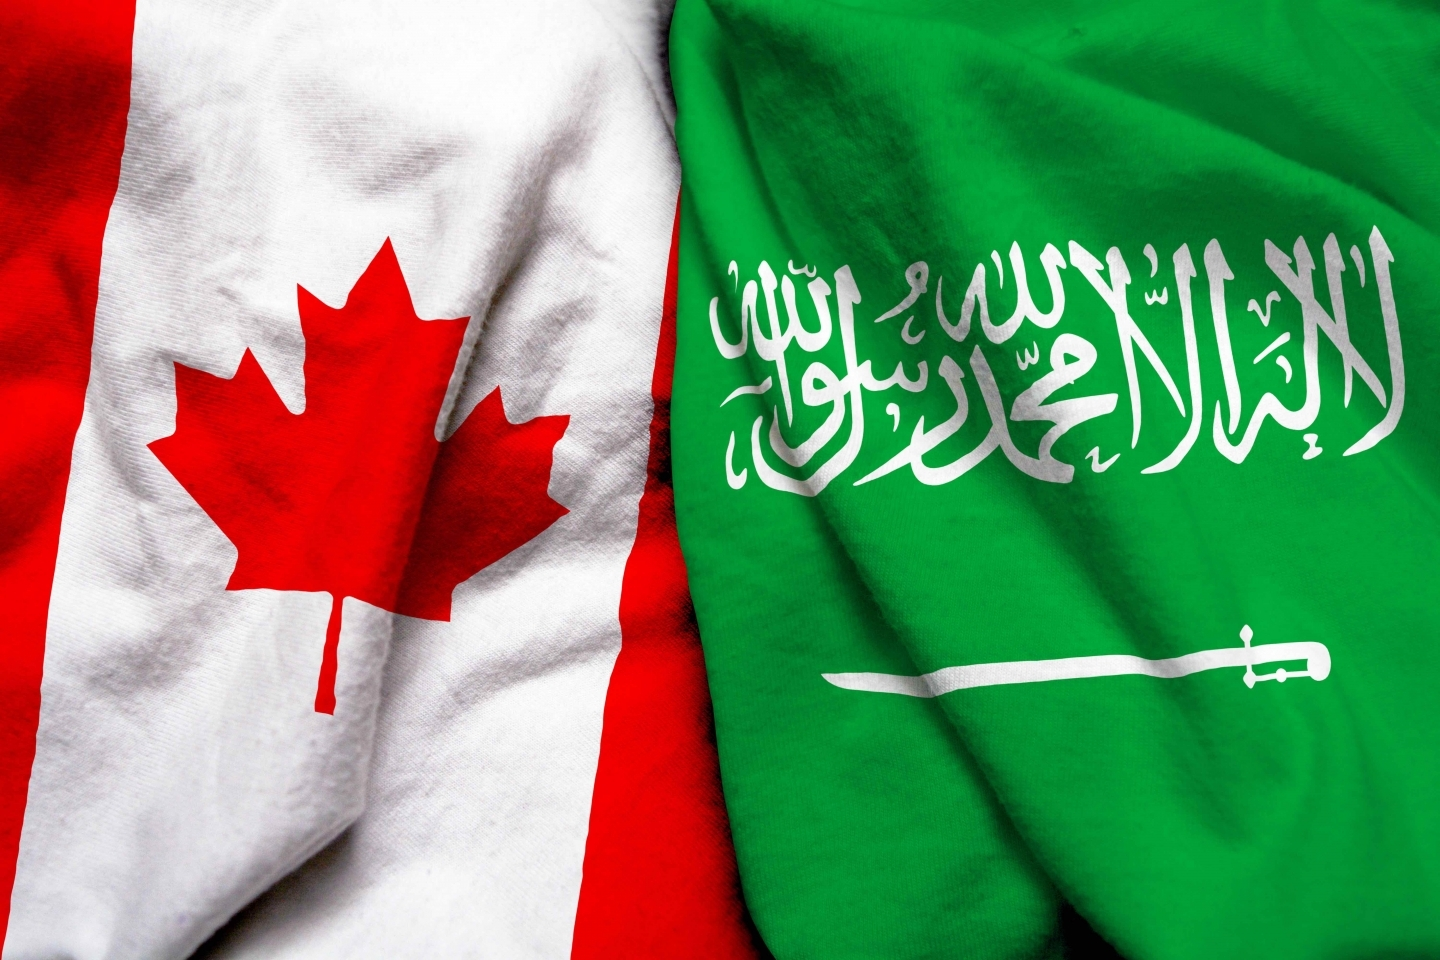 Canadian and Saudi Arabian flags (Shutterstock)